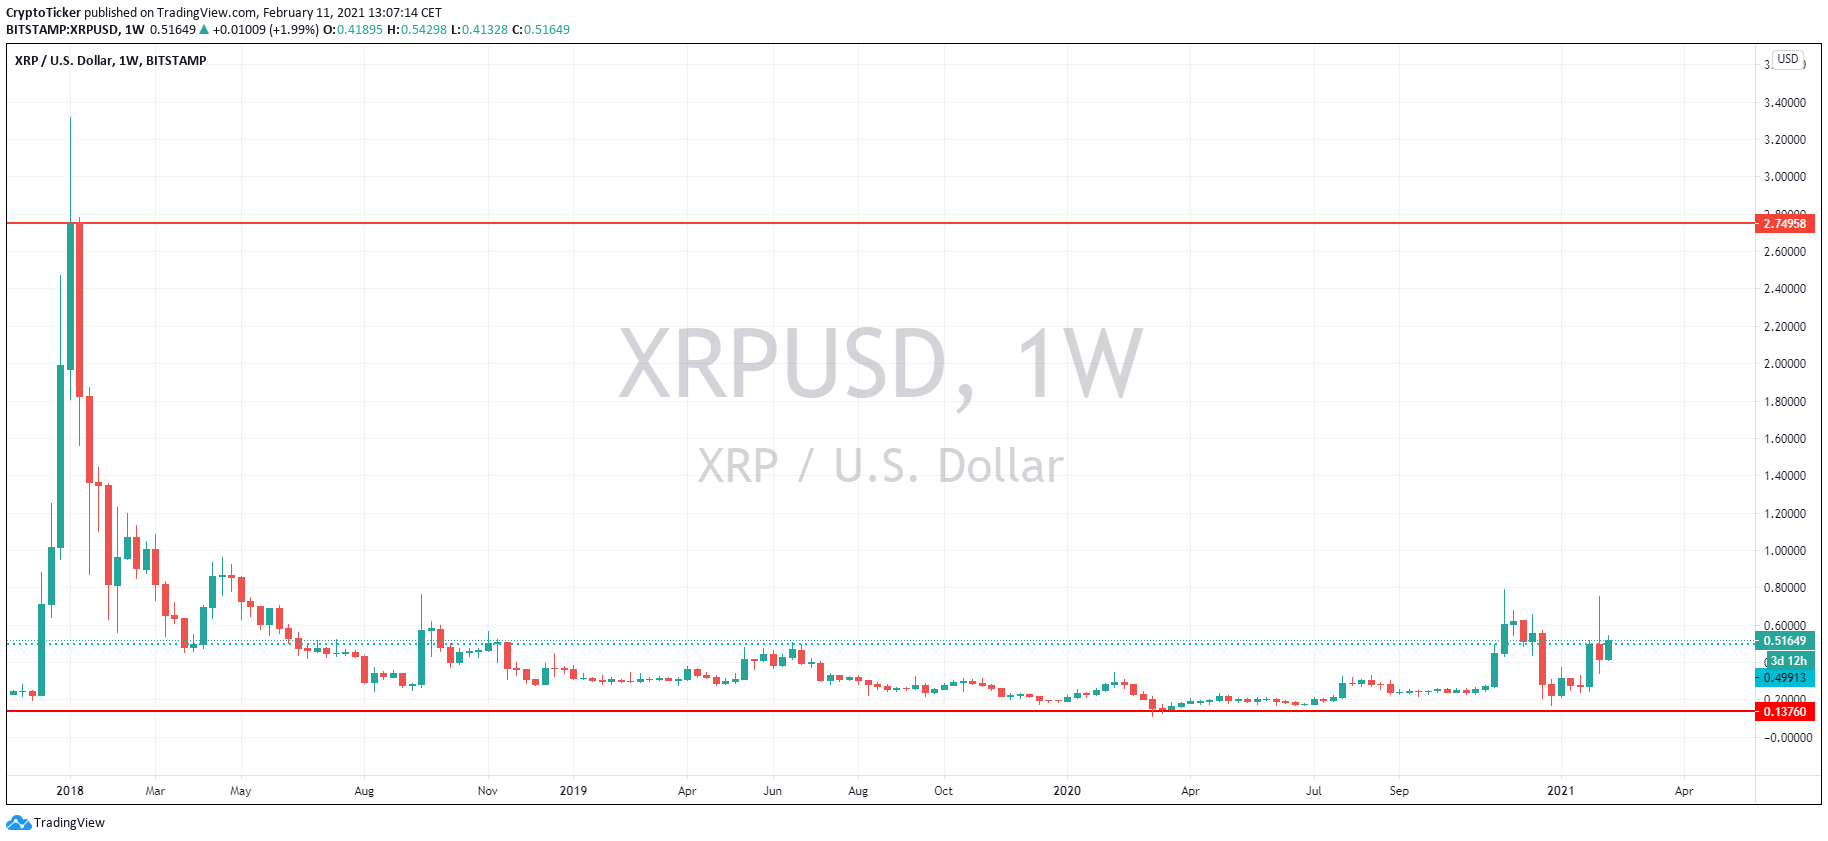 XRP/USD 1-week chart showing XRP's current price compared to previous ATH